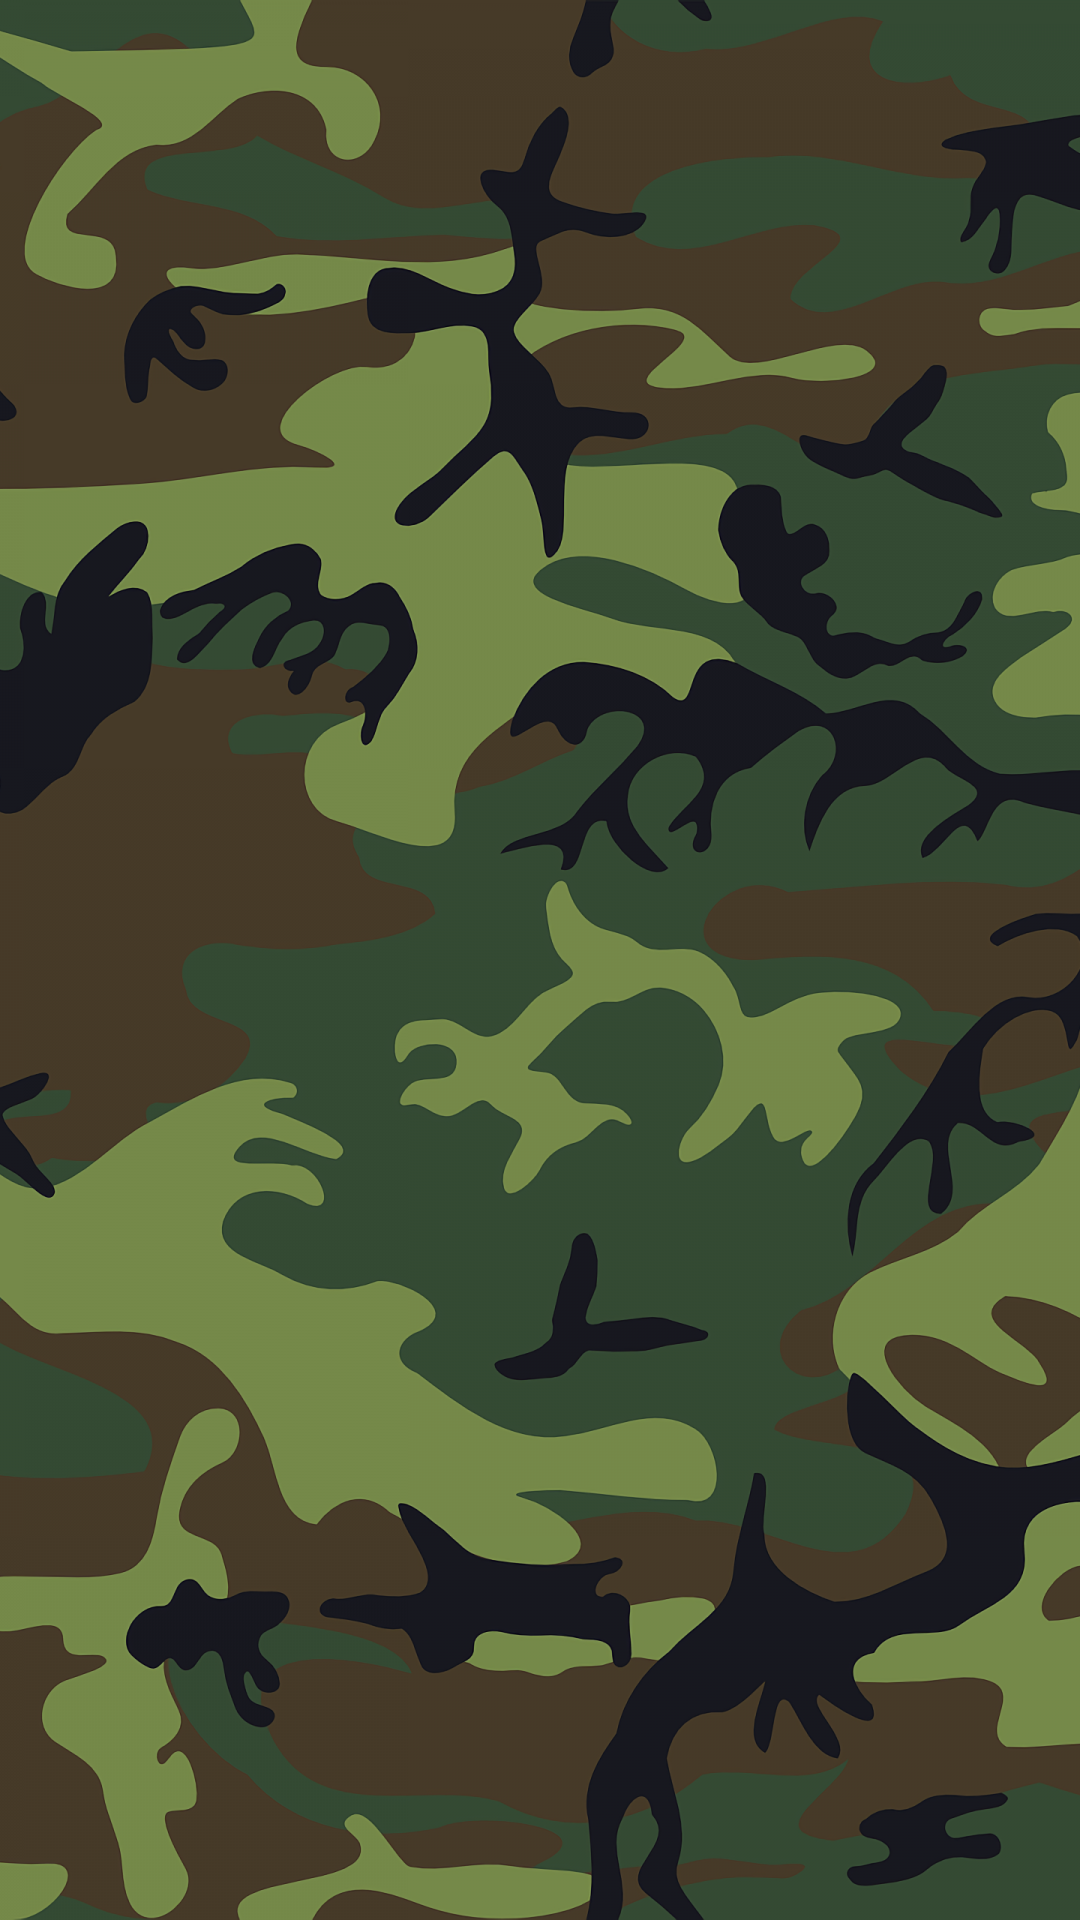 Camouflage Military Patterns Abstract 1080x1920 Wallpaper Camouflage Wallpaper Camo Wallpaper Army Wallpaper